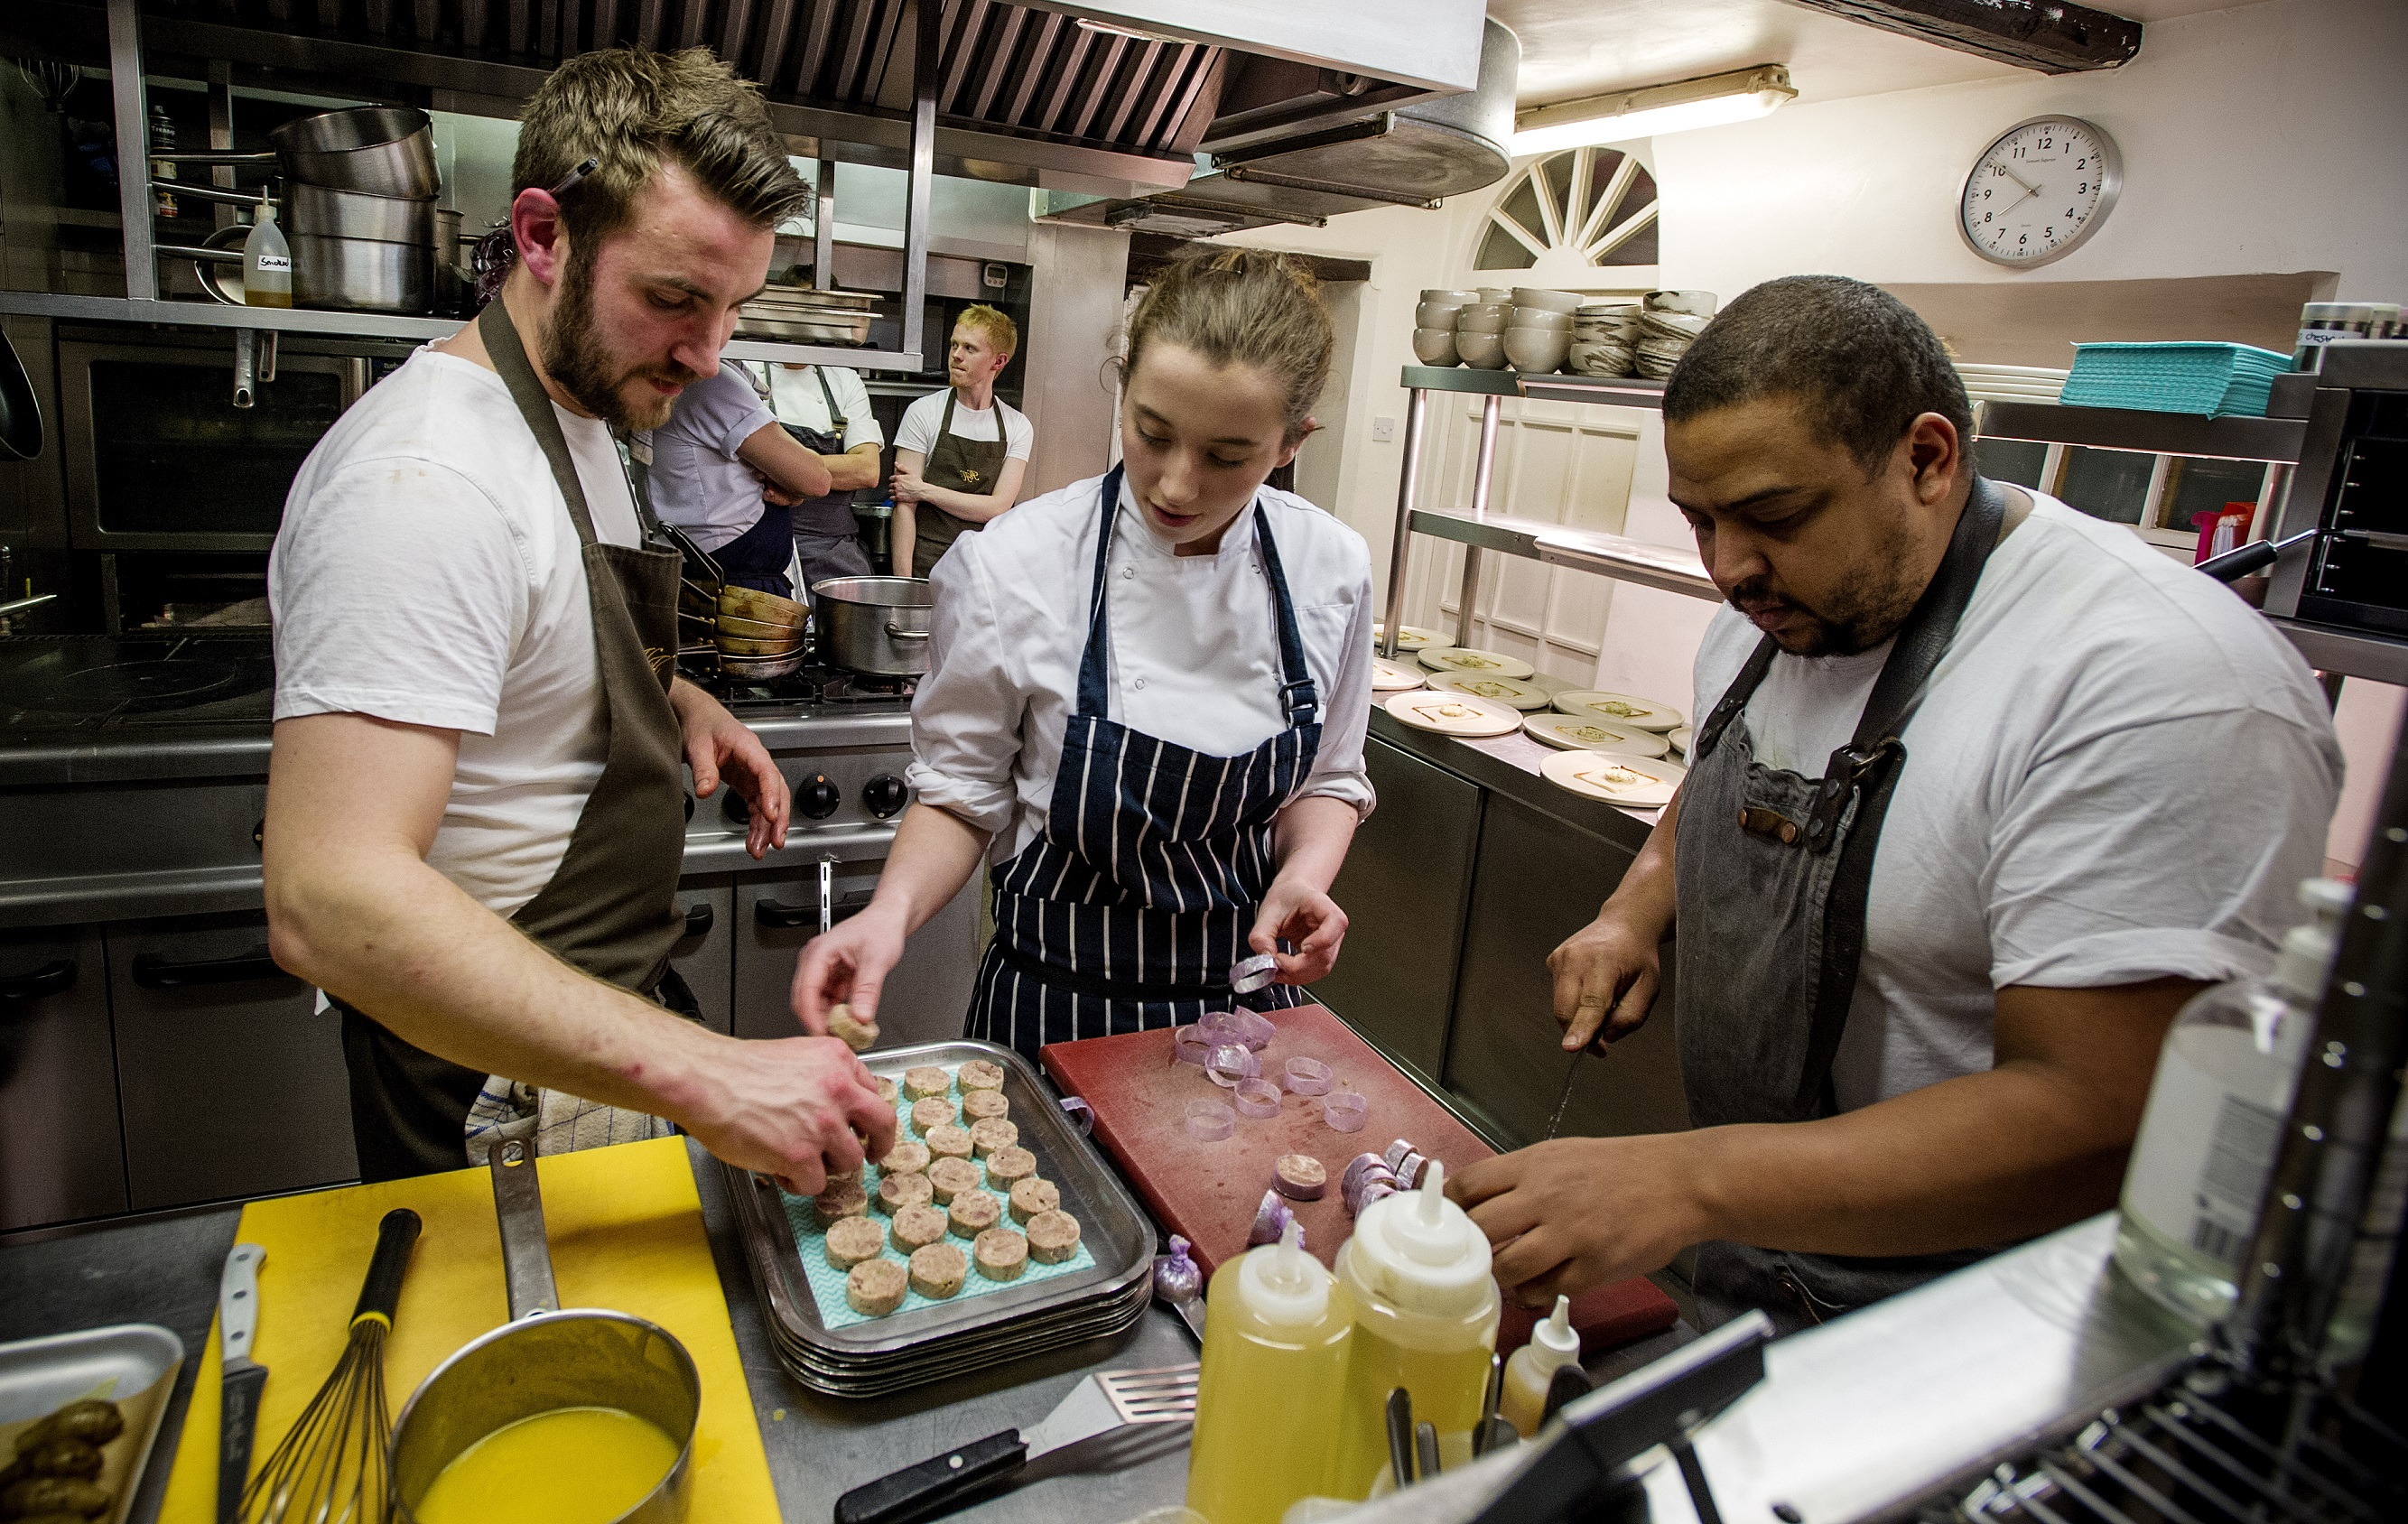 Cake Making Classes Lancashire : Lancashire s Finest Showcased at Hipping Hall - Hipping Hall